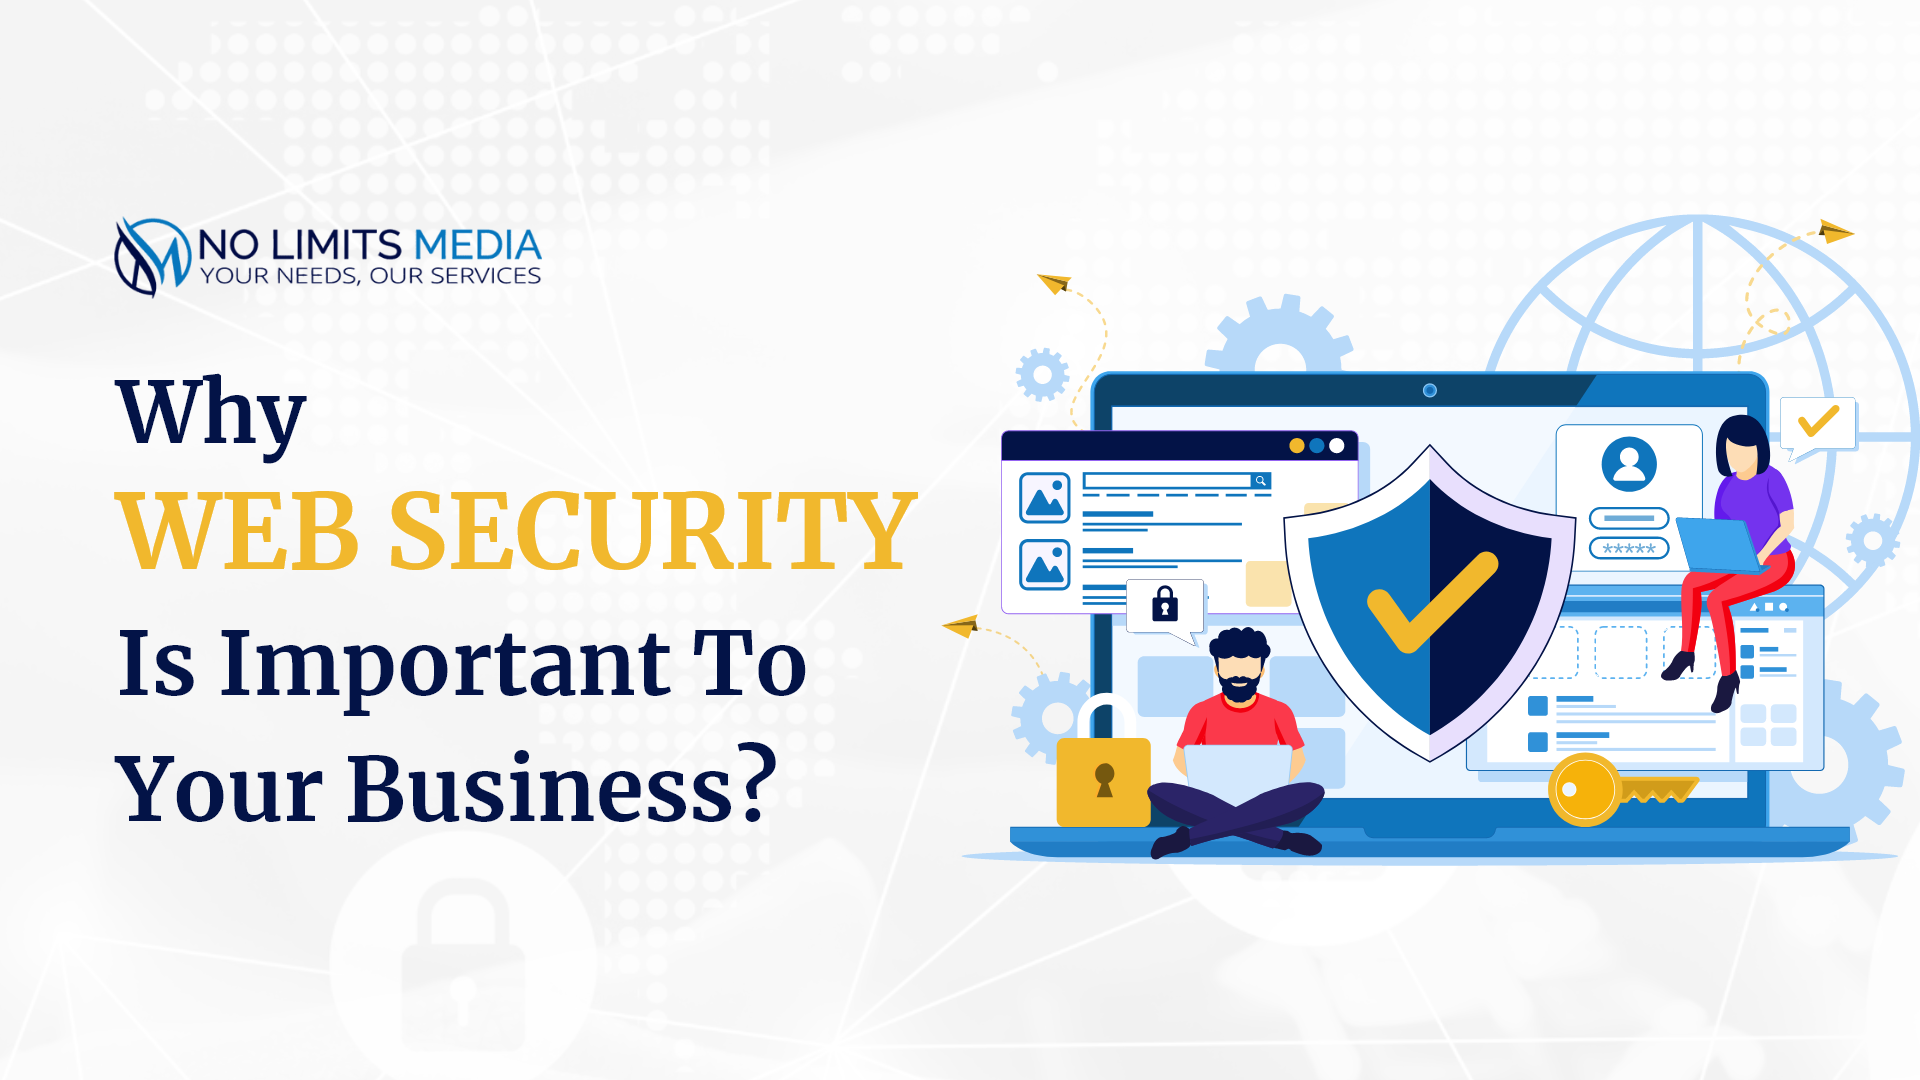 Why Web Security Is Important To Your Business?